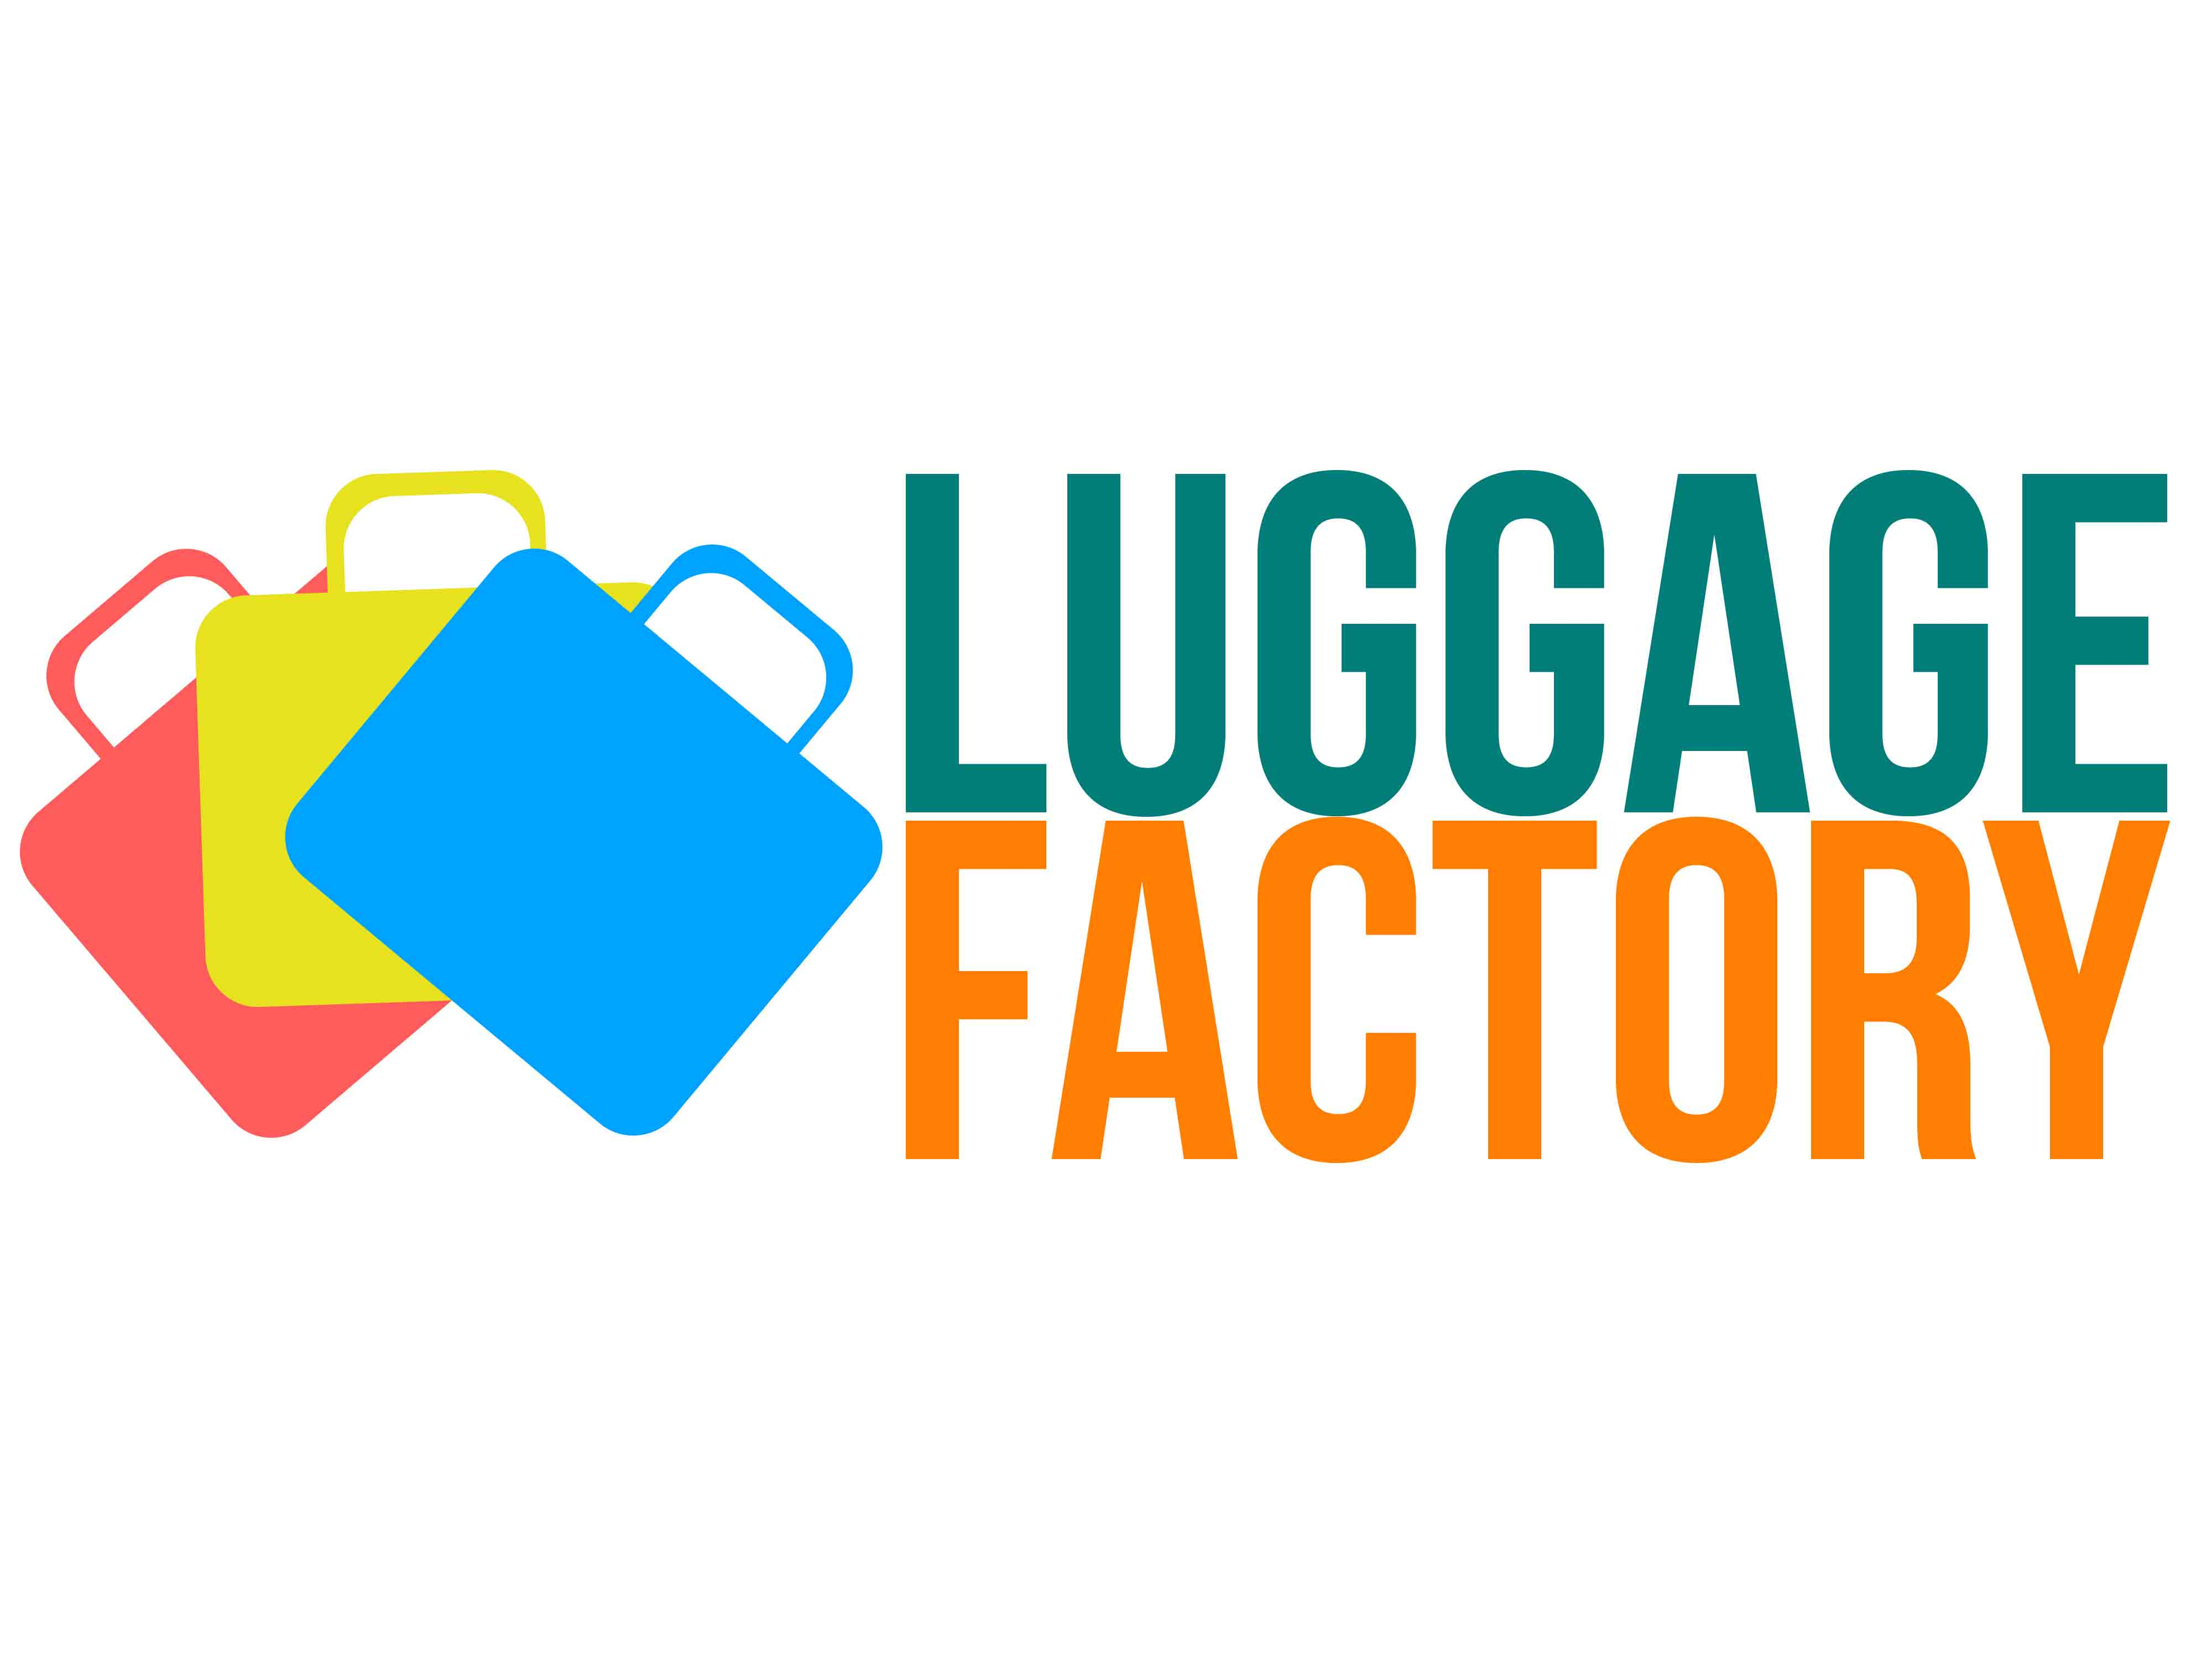 Logo Design by mccc_27 - Entry No. 101 in the Logo Design Contest Creative Logo Design for Luggage Factory.